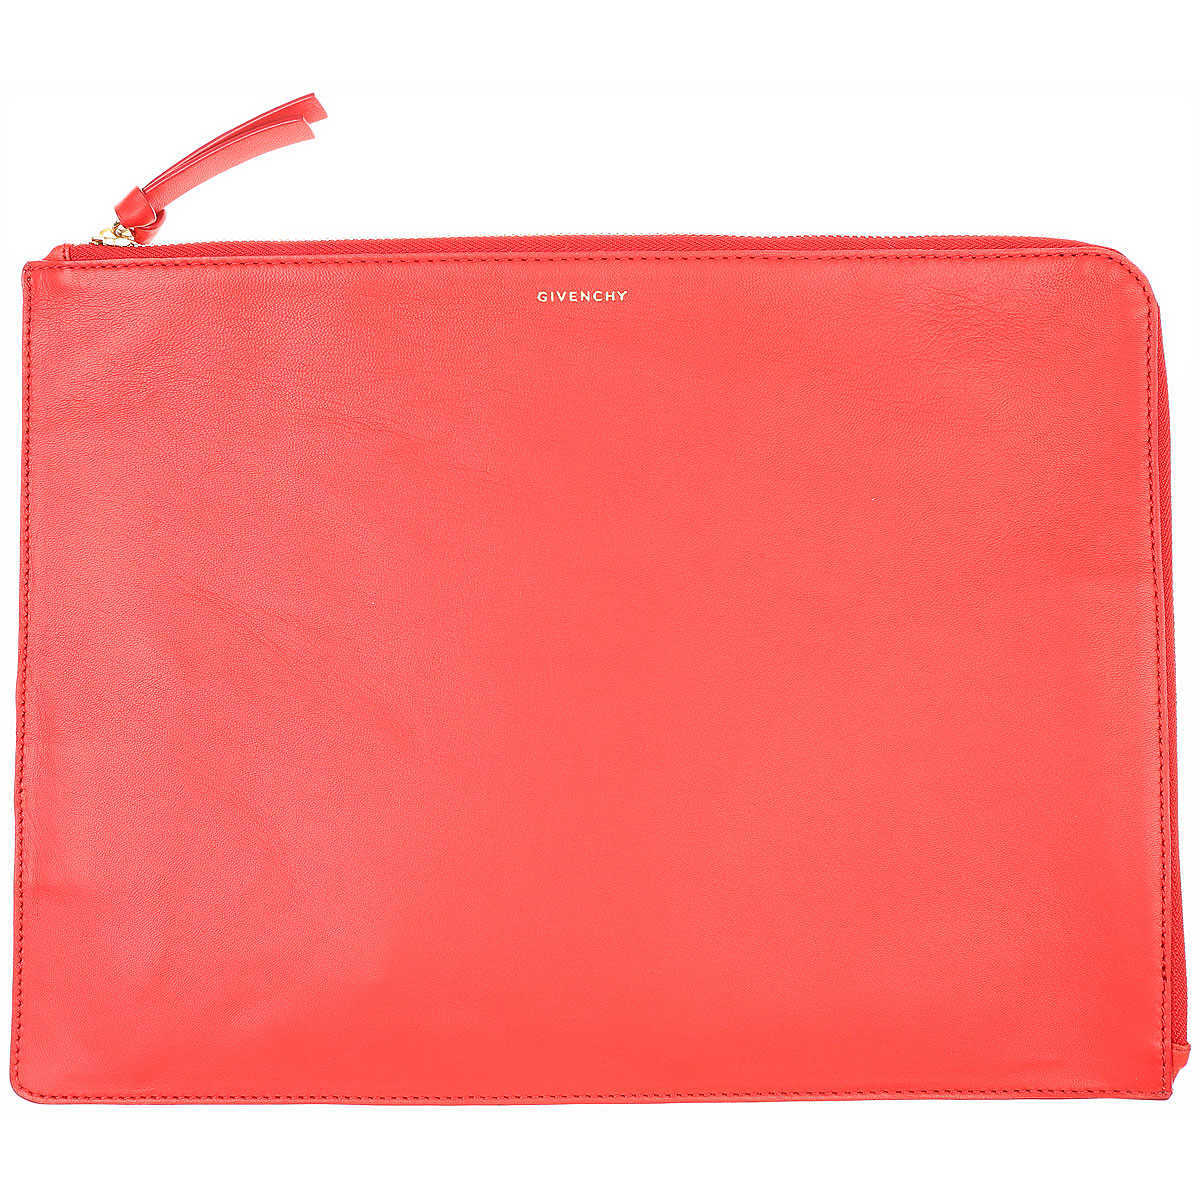 Givenchy Women's Pouch Red Canada - GOOFASH - Womens BAGS